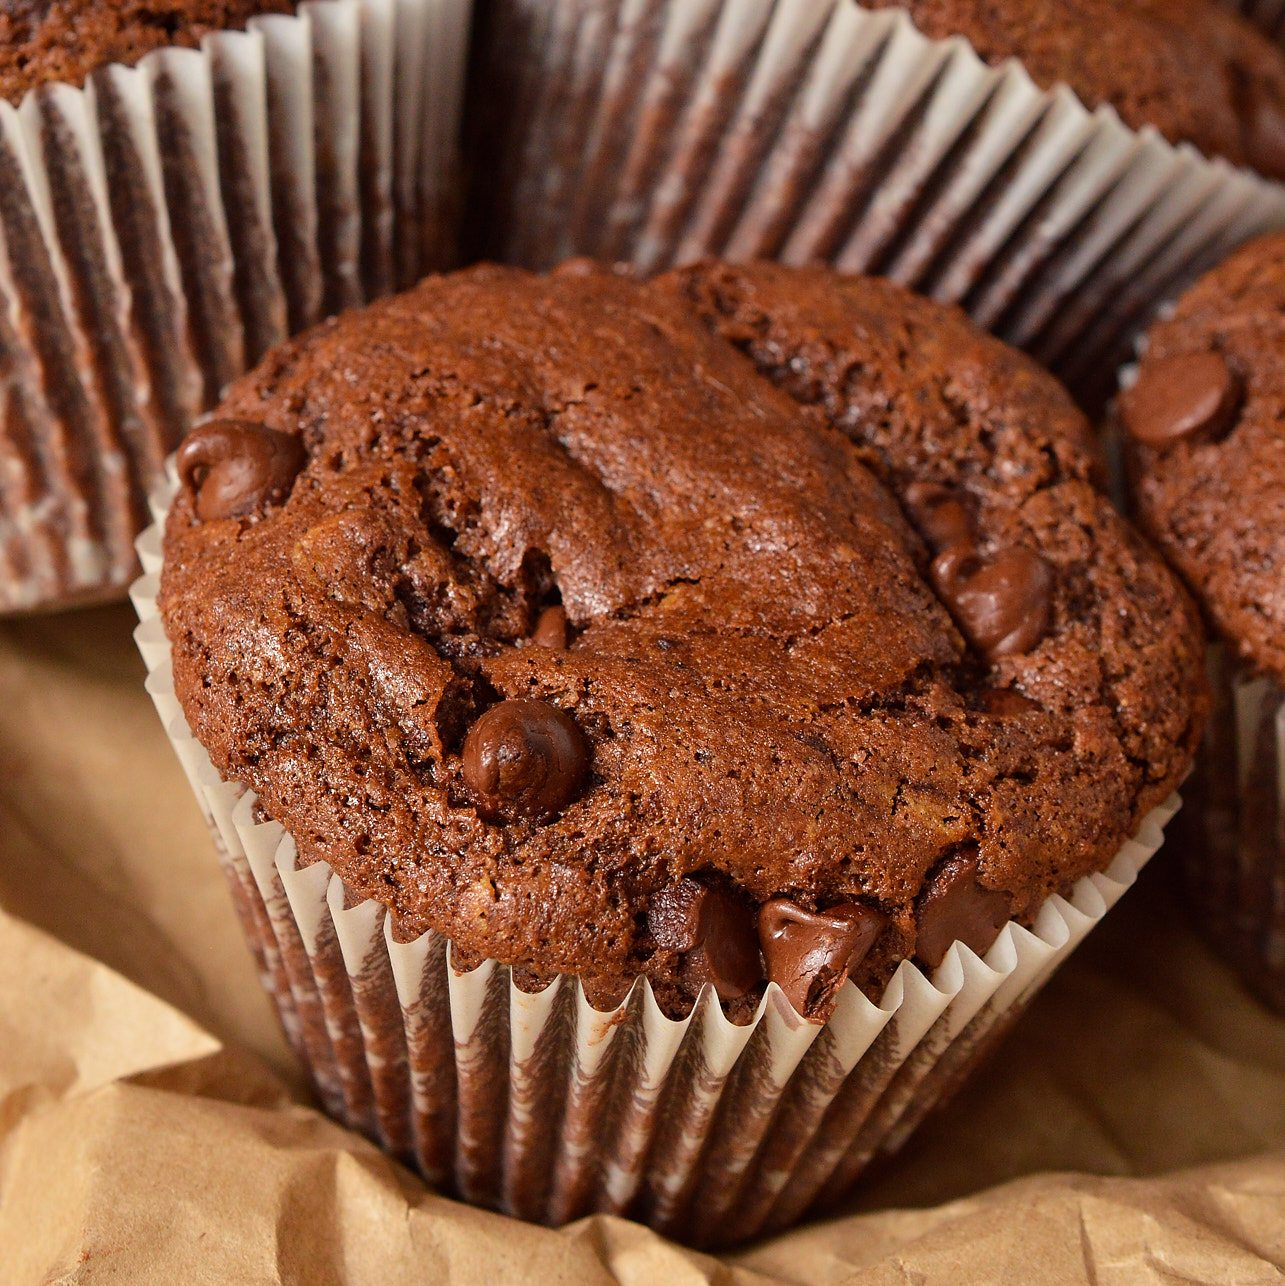 Costco Chocolate Chip Muffin Ingredients